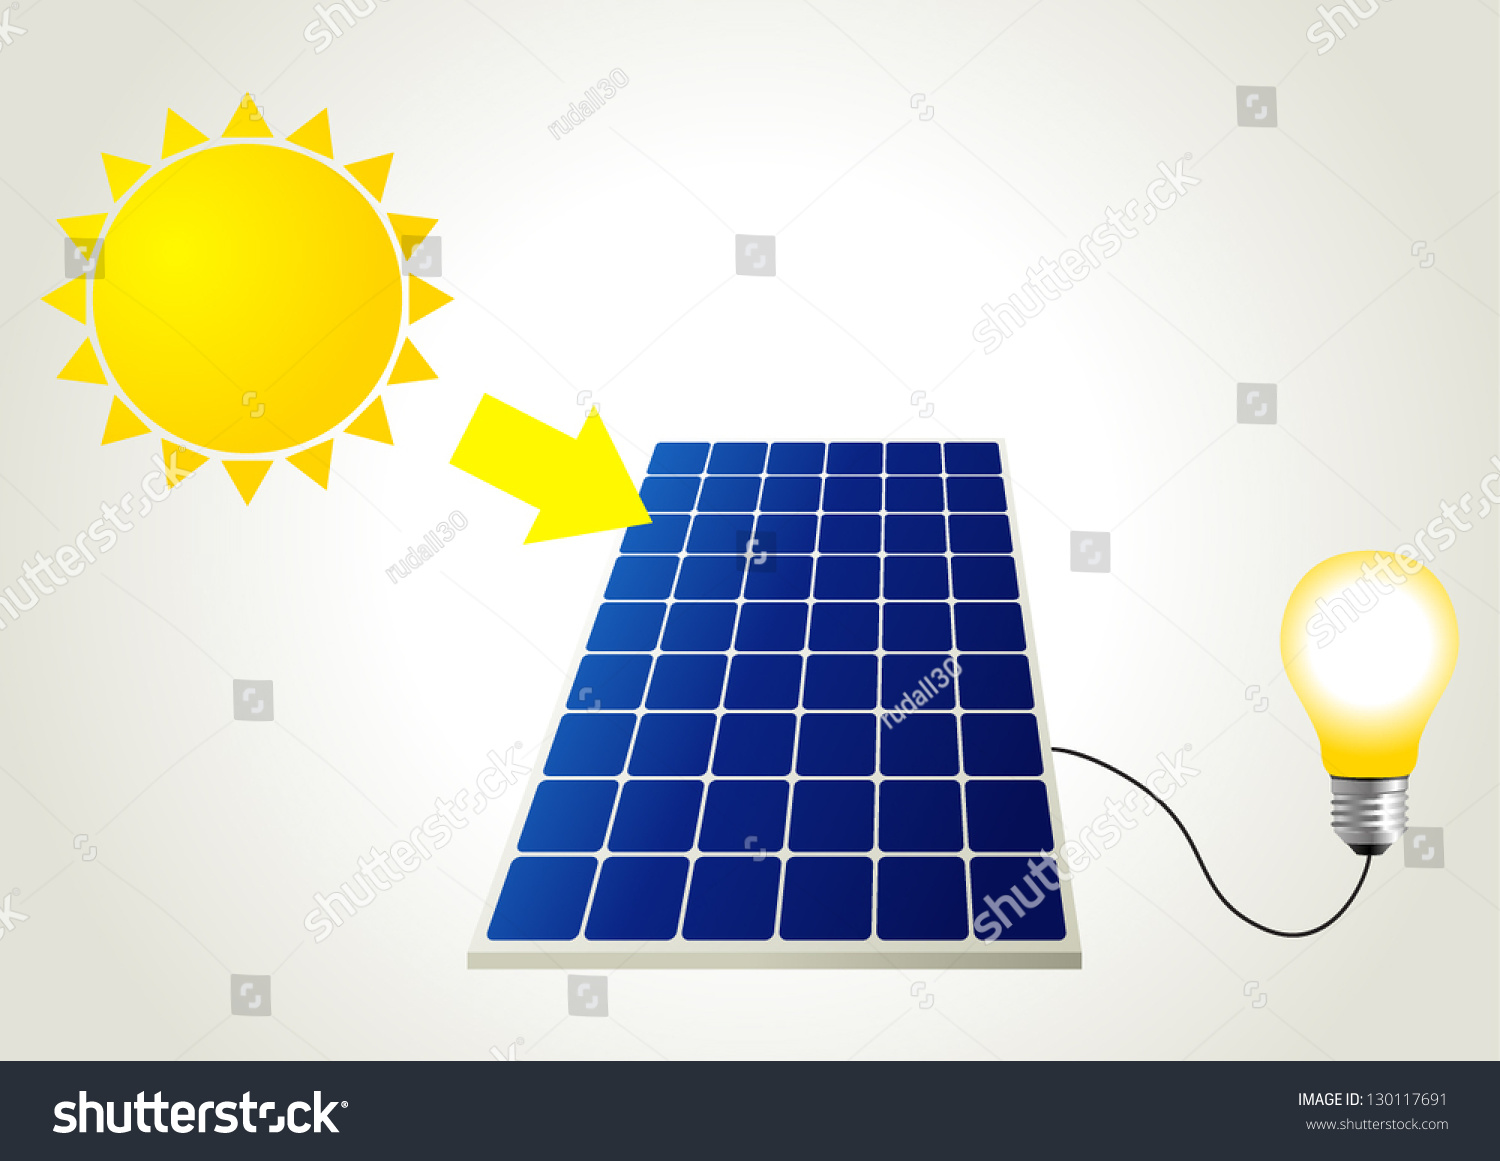 Schematic Illustration Solar Energy Stock Vector Royalty Free Power Related Schematics Of